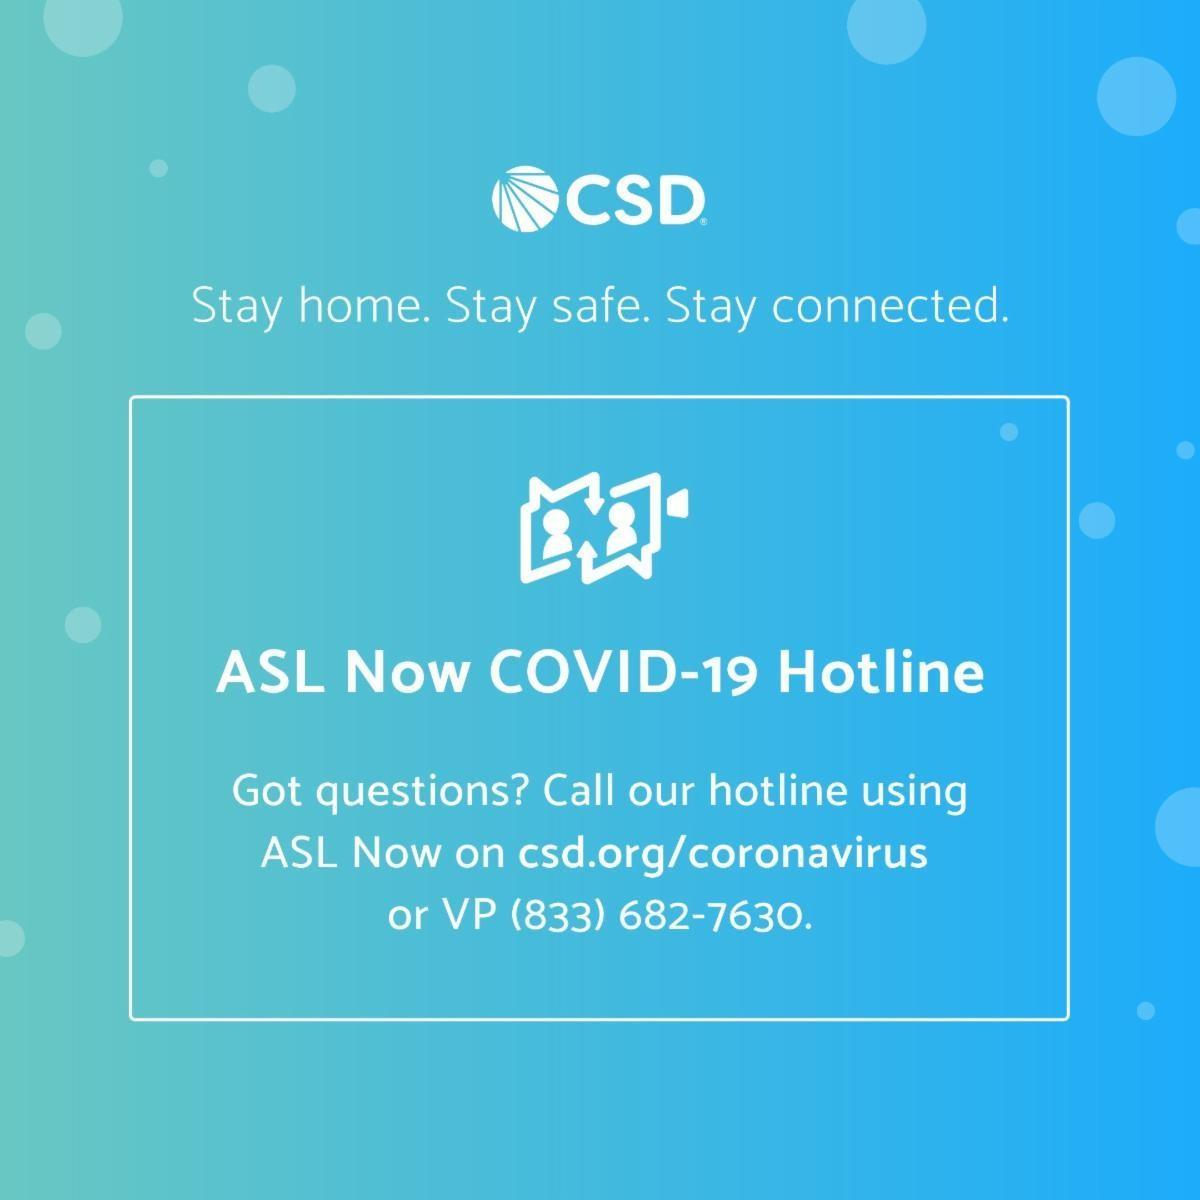 ASL Now COVID-19 Hotline